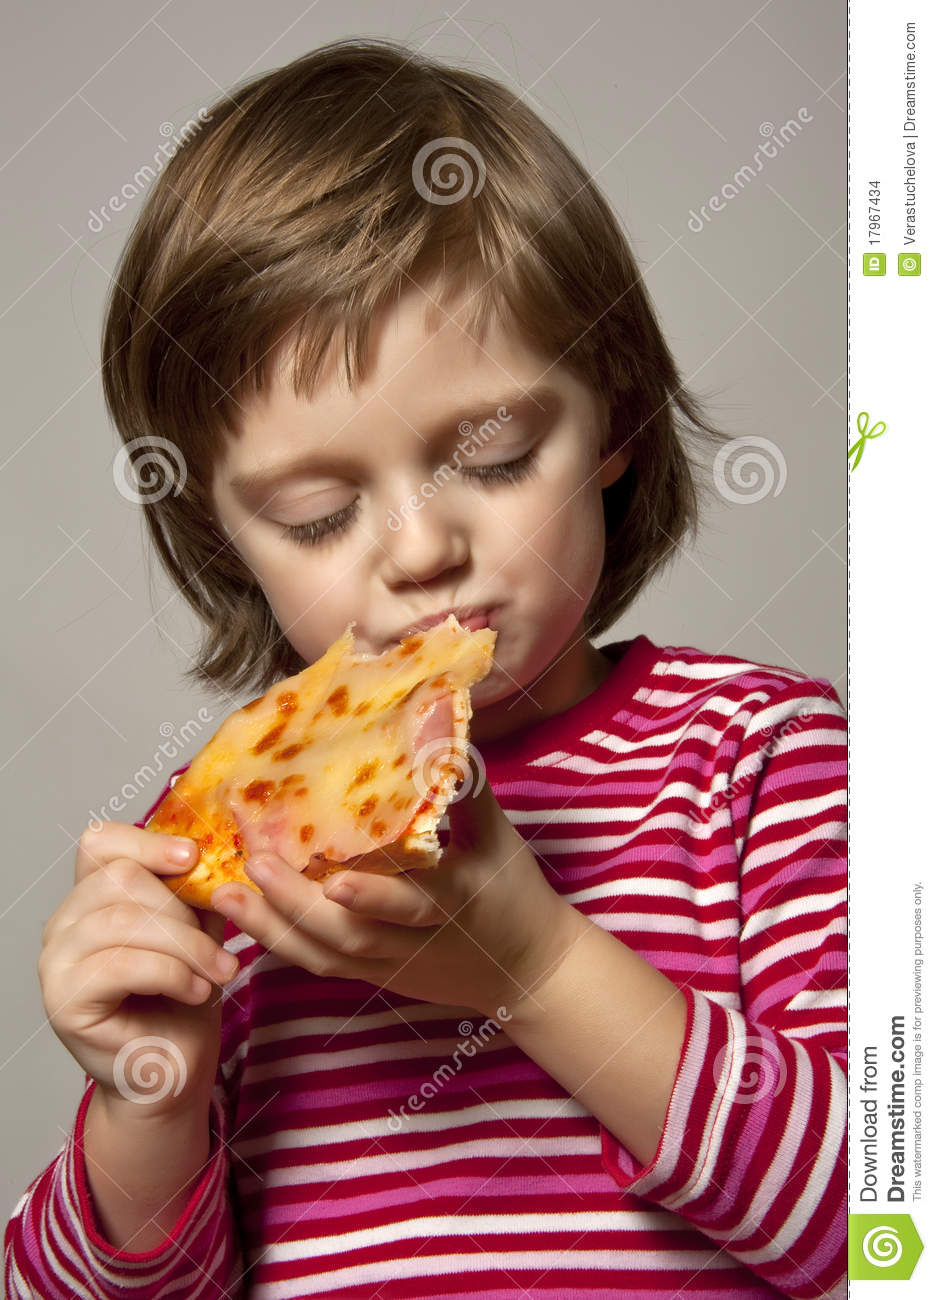 Little Girl Eating Pizza Stock Images - Image: 17967434